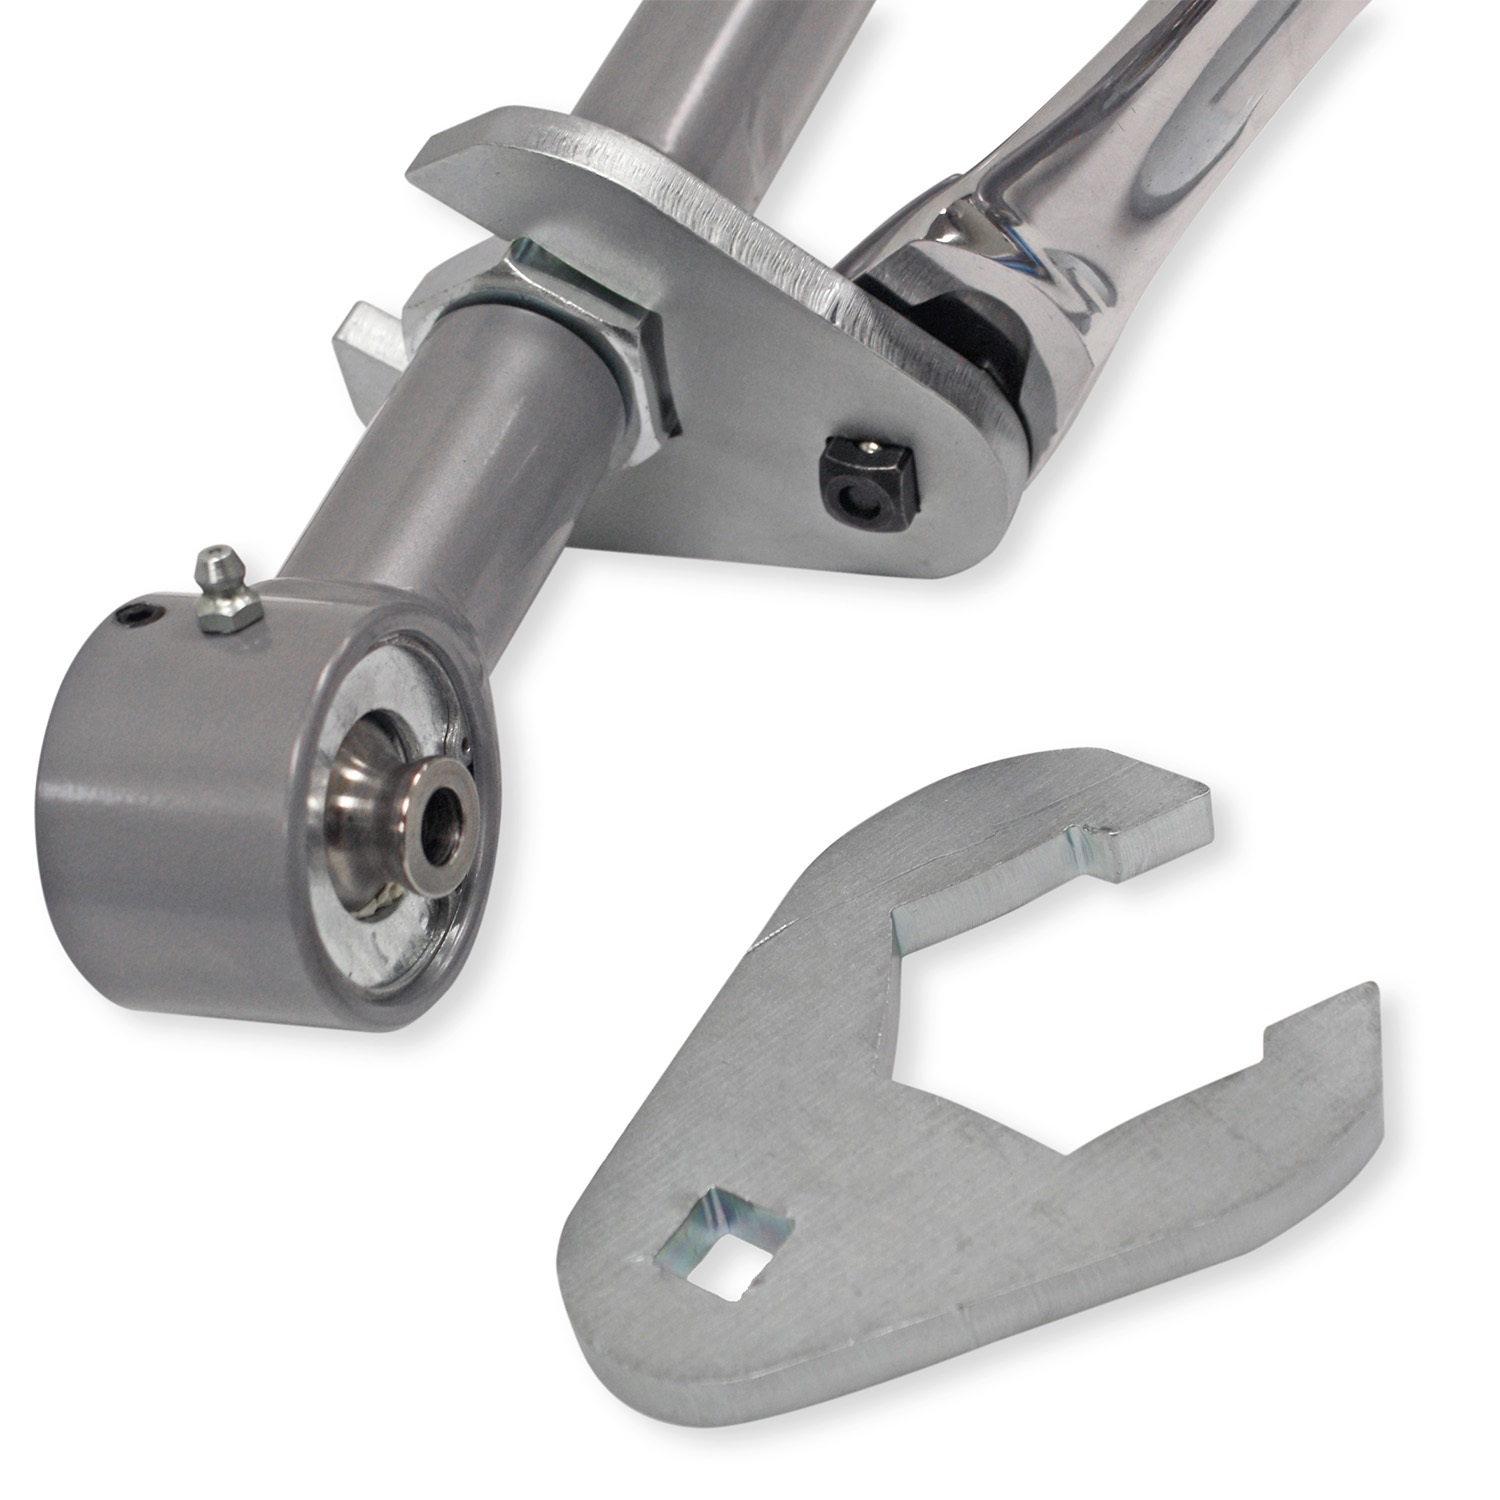 Rubicon Express Re3775 Crows Foot Wrench - New for sale in Wilkes